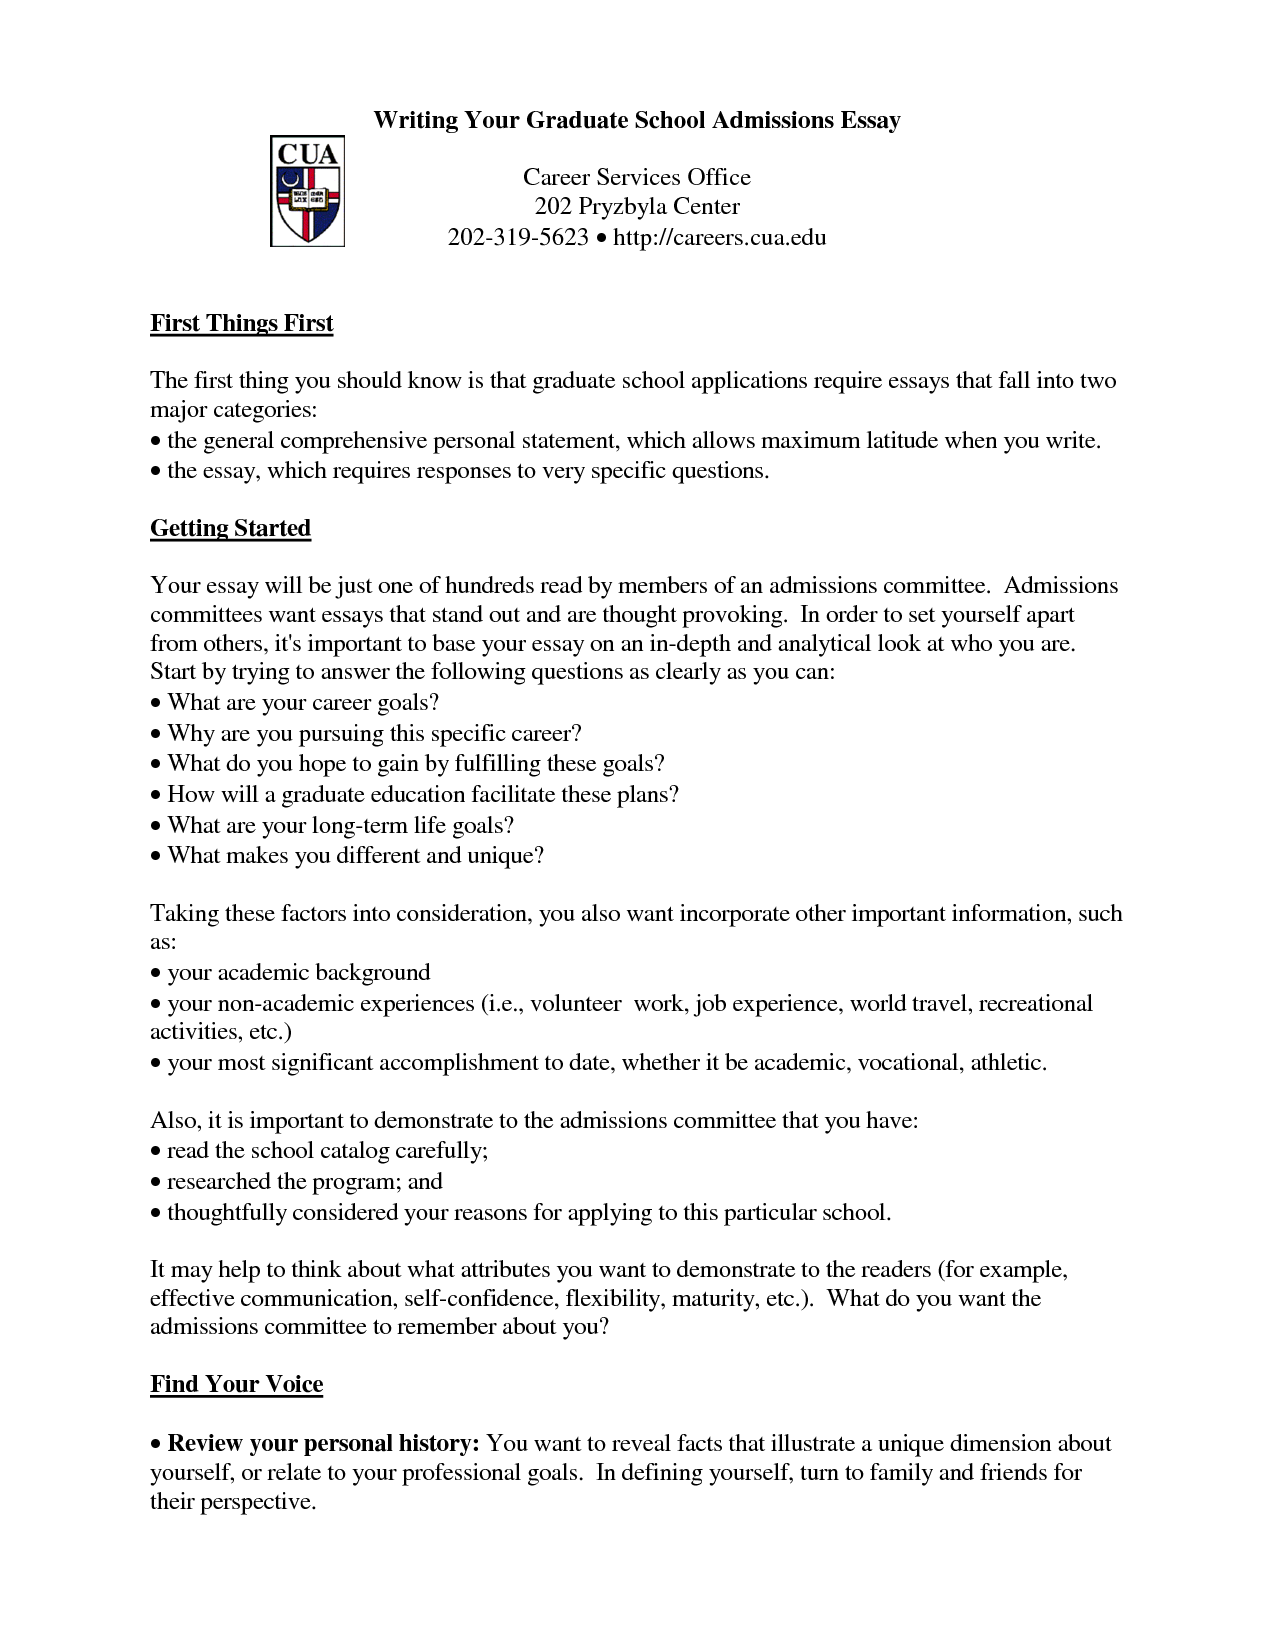 extended essay cover {a international ~ baccalaureate extended essay cover j candidates must complete this page and then give this cover and thetr final verston of the extended essay to.